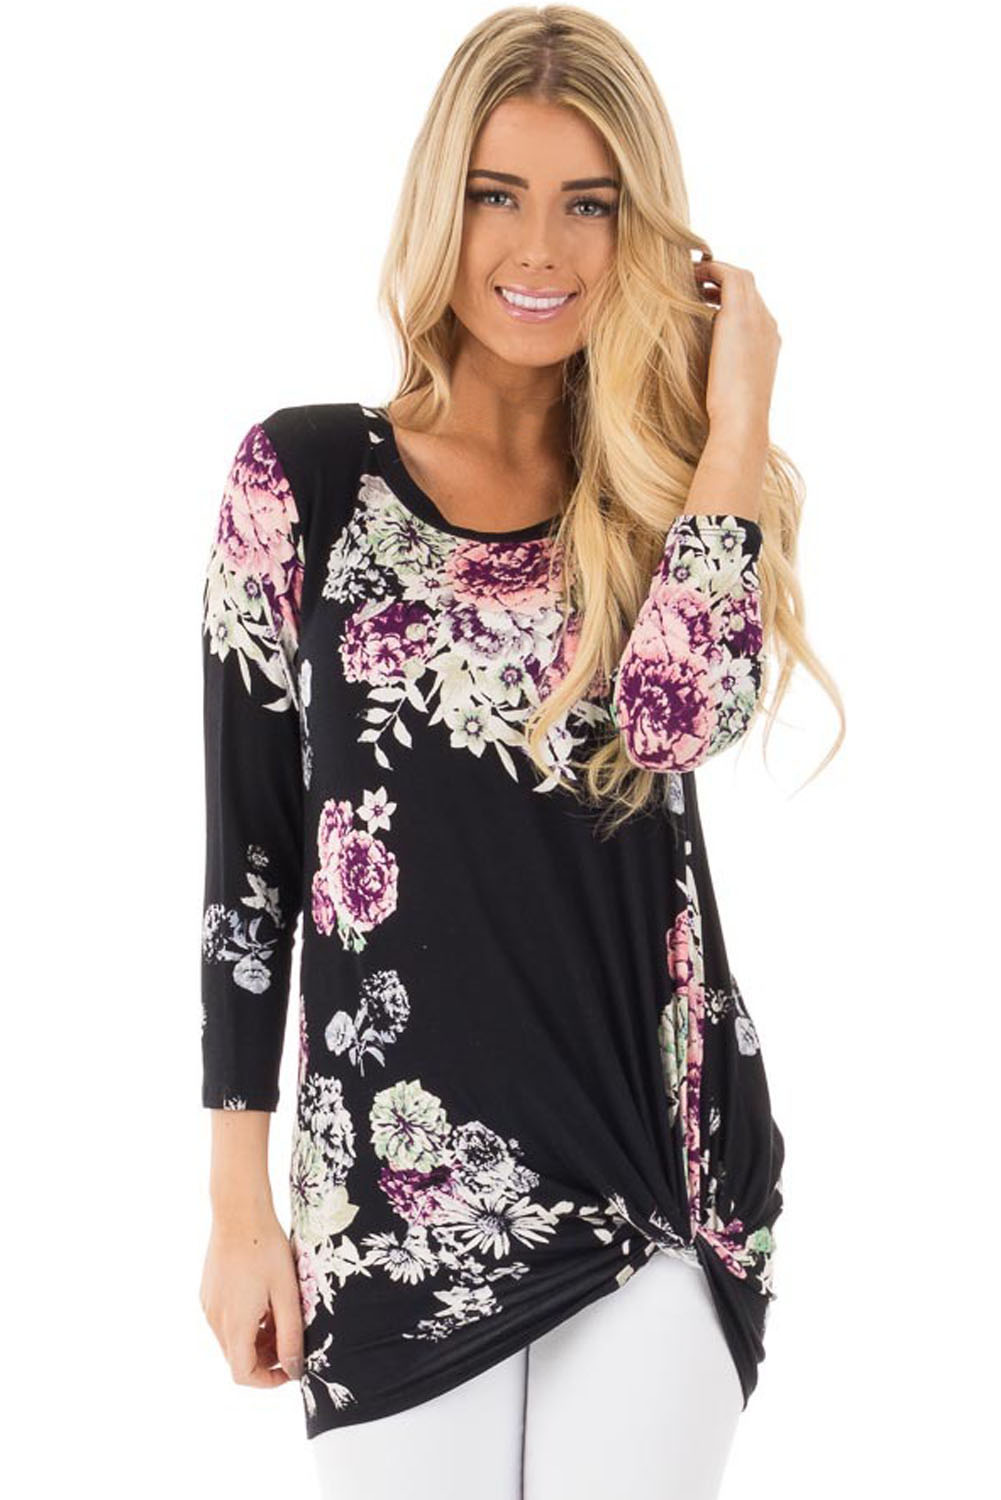 Chicloth Black Long Sleeve Knotted Floral Print Blouse